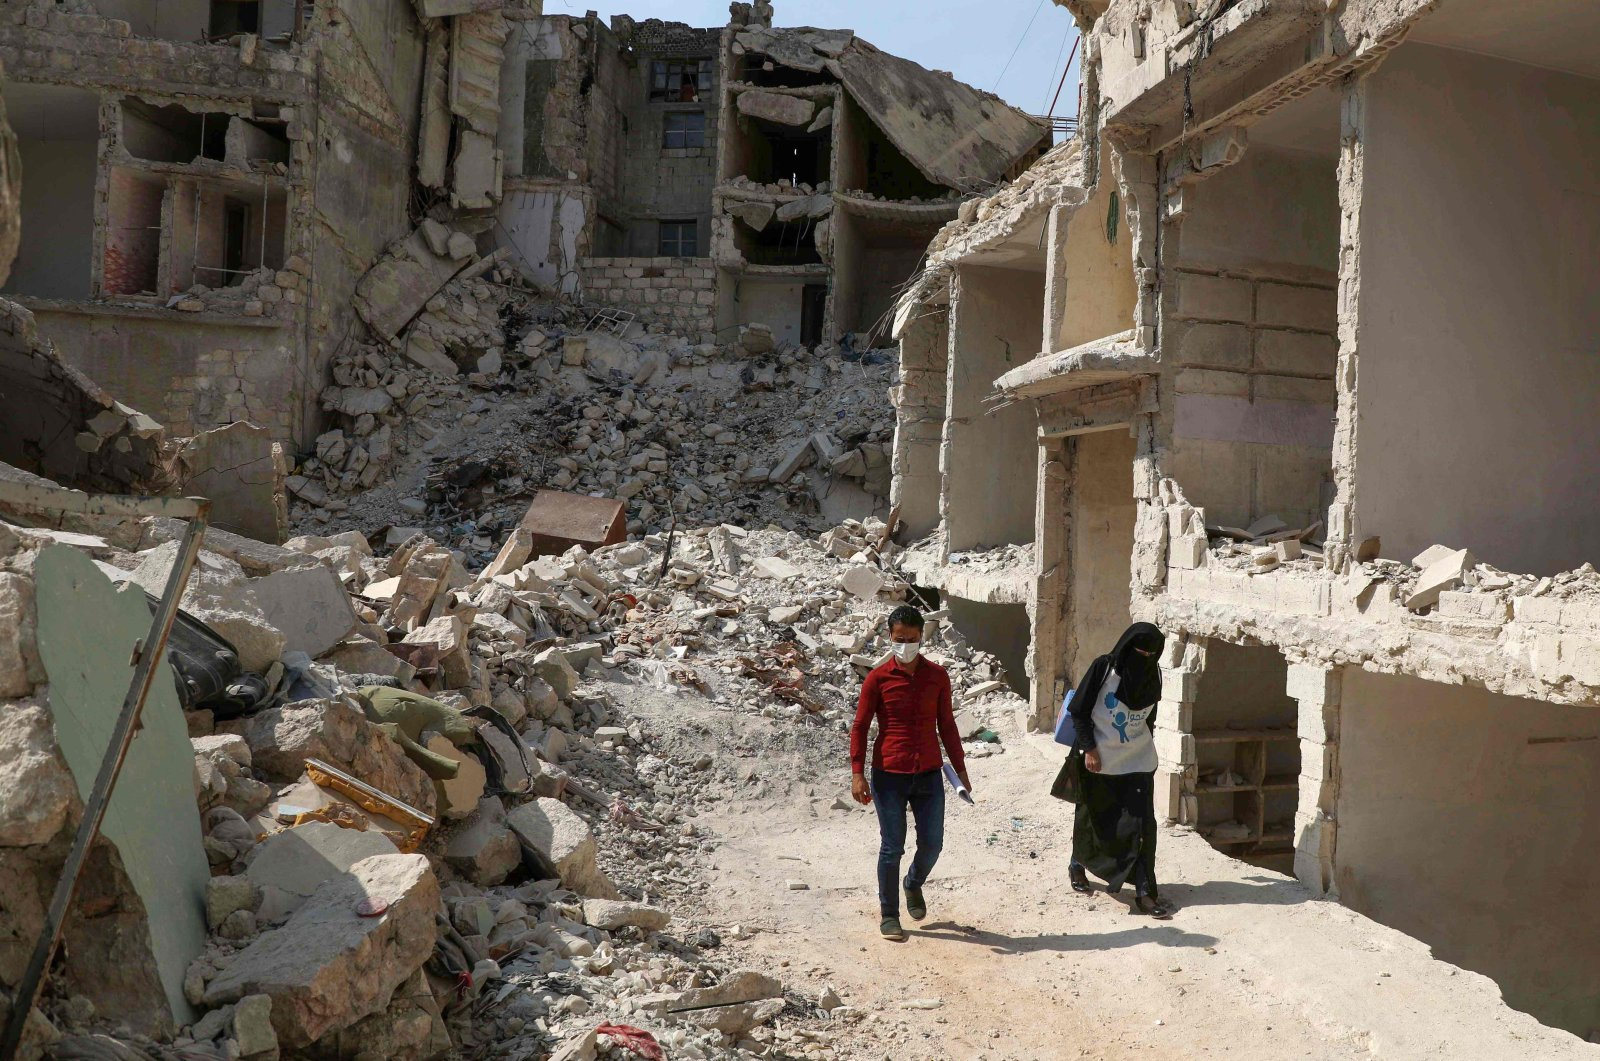 A team of two Syrian medics, taking part in a vaccination campaign against the polio disease, go door to door in the ravaged town of Ariha in the opposition-held northwestern Idlib province, to give vaccine drops to children, Oct. 10, 2020. (AFP Photo)